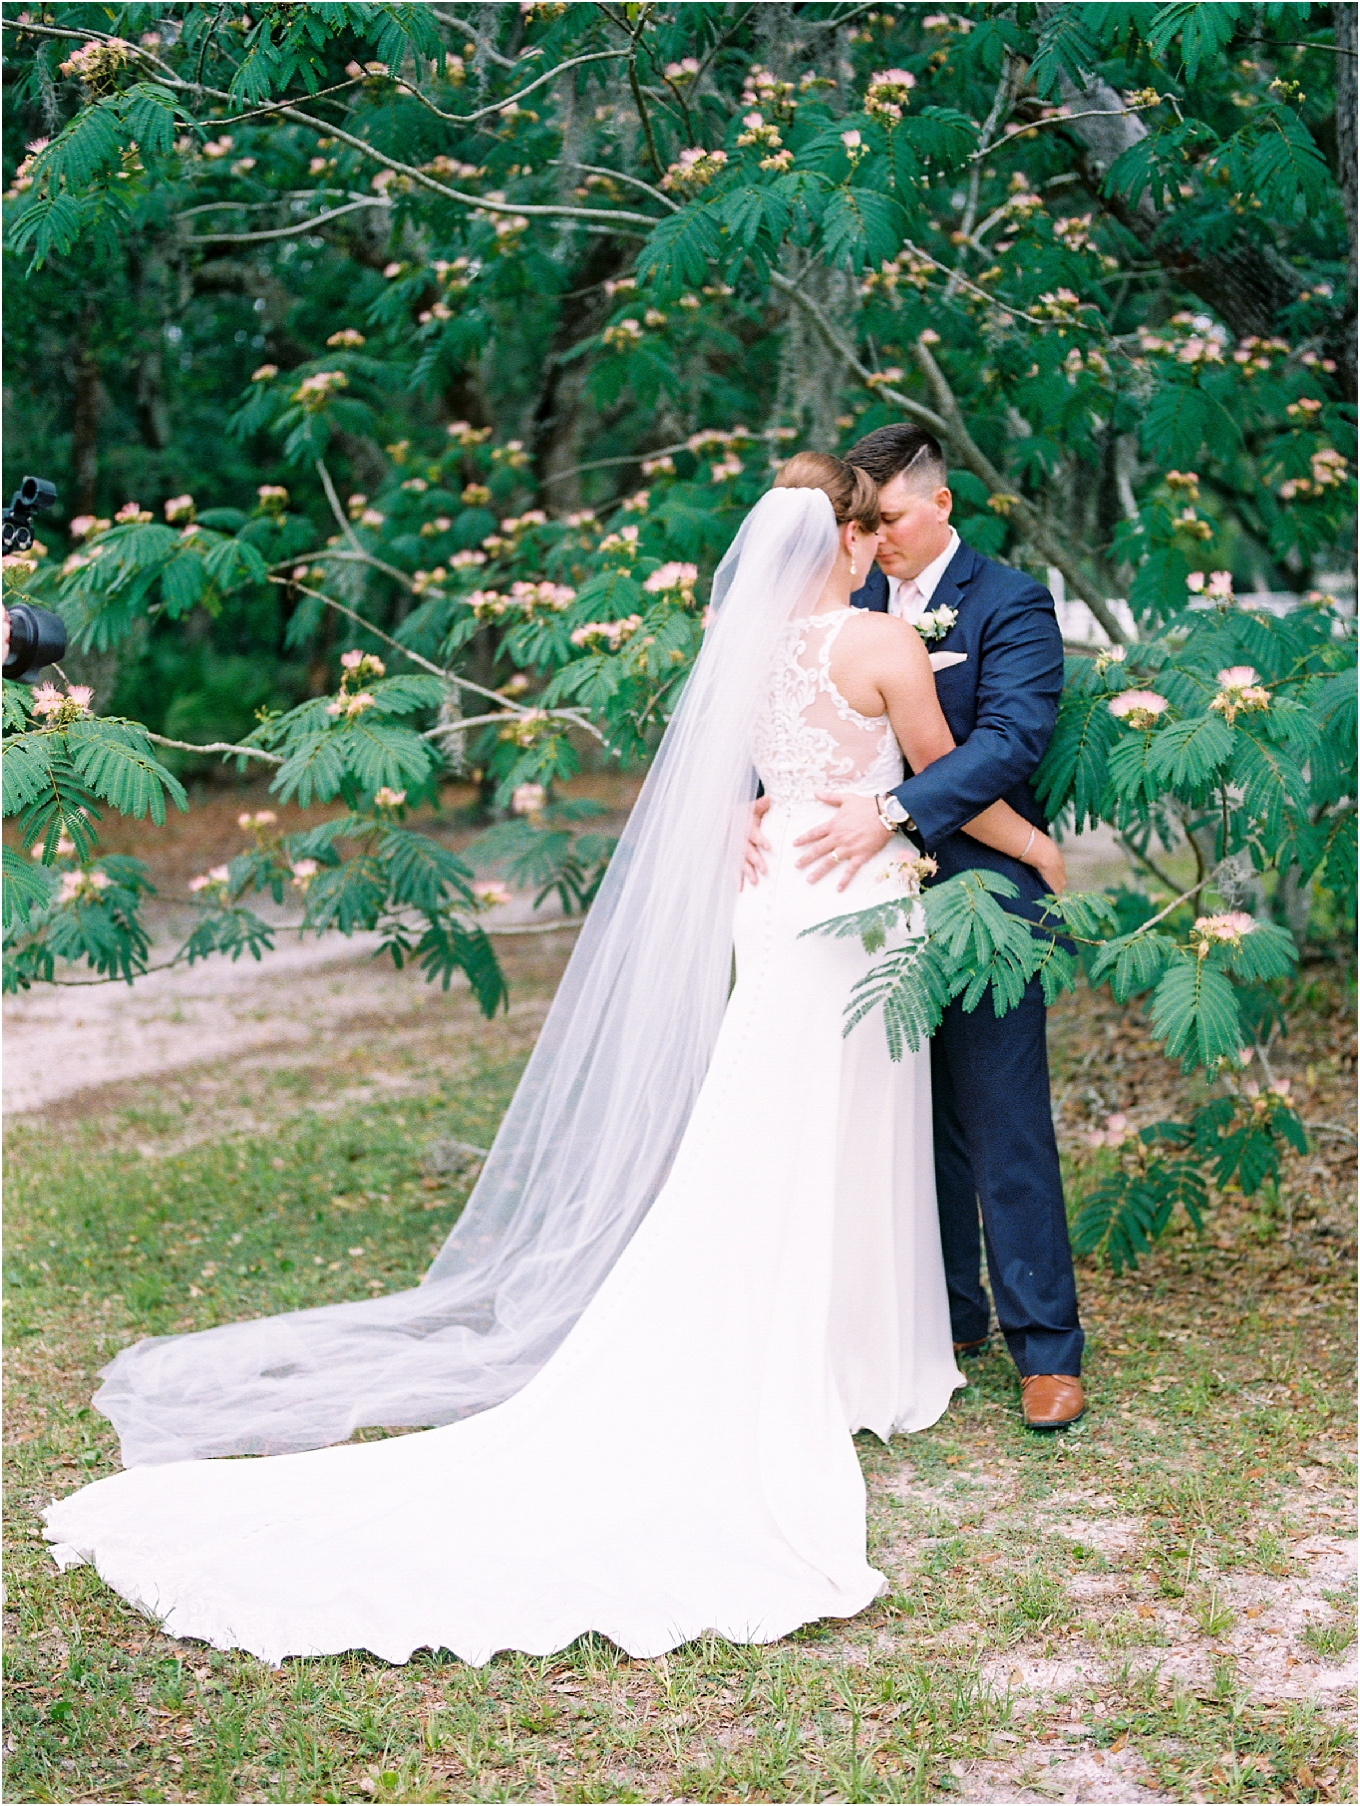 Lisa Silva Photography- Ponte Vedra Beach, St. Augustine and Jacksonville, Florida Fine Art Film Wedding and Boudoir Photography- Elegant Blush and Navy Wedding at Chandler Oaks Barn in St. Augustine, Florida_0078.jpg